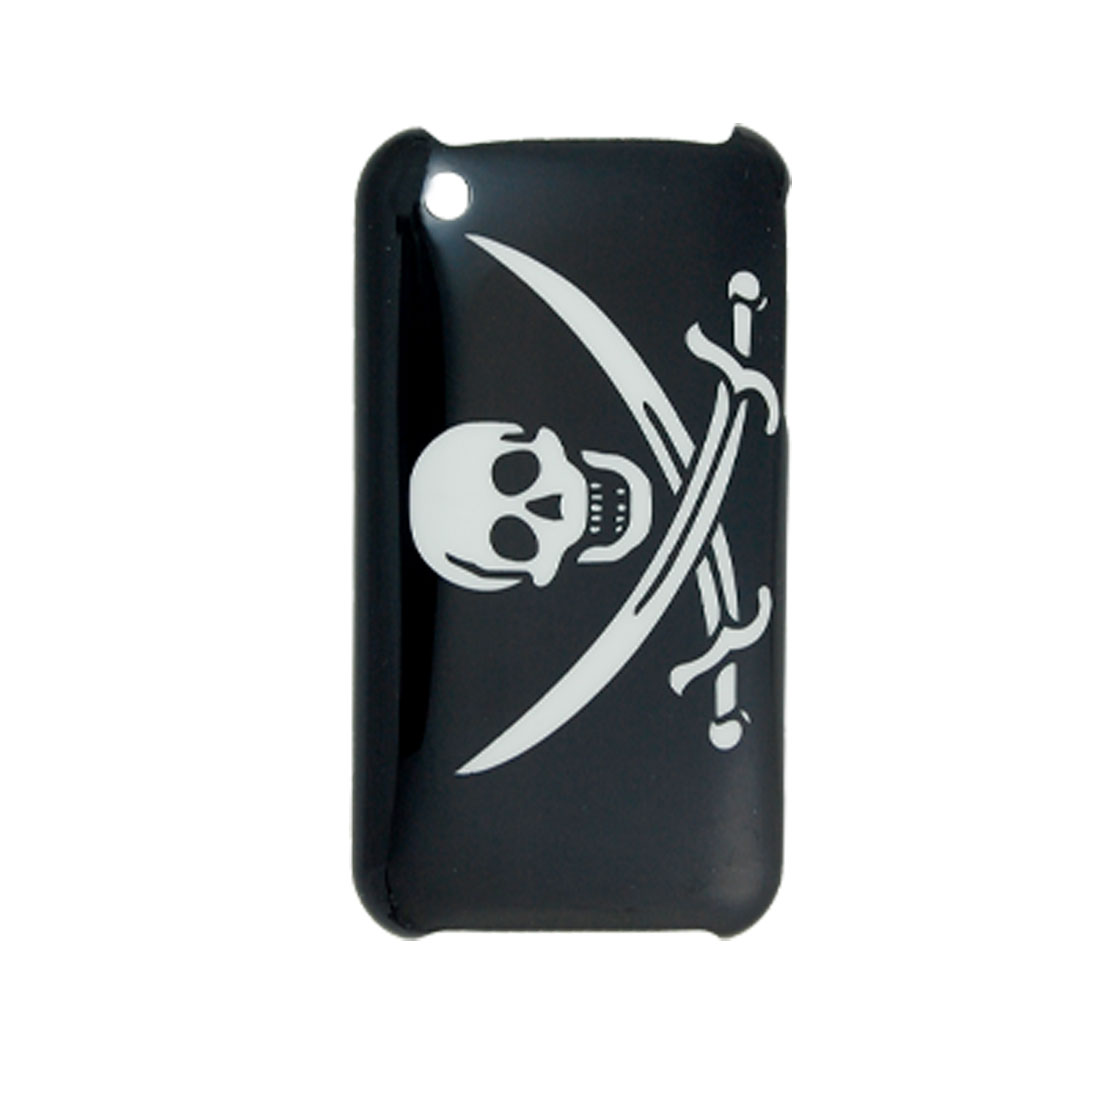 White Skull Cutter Pattern Hard Back Cover for iPhone 3G Black